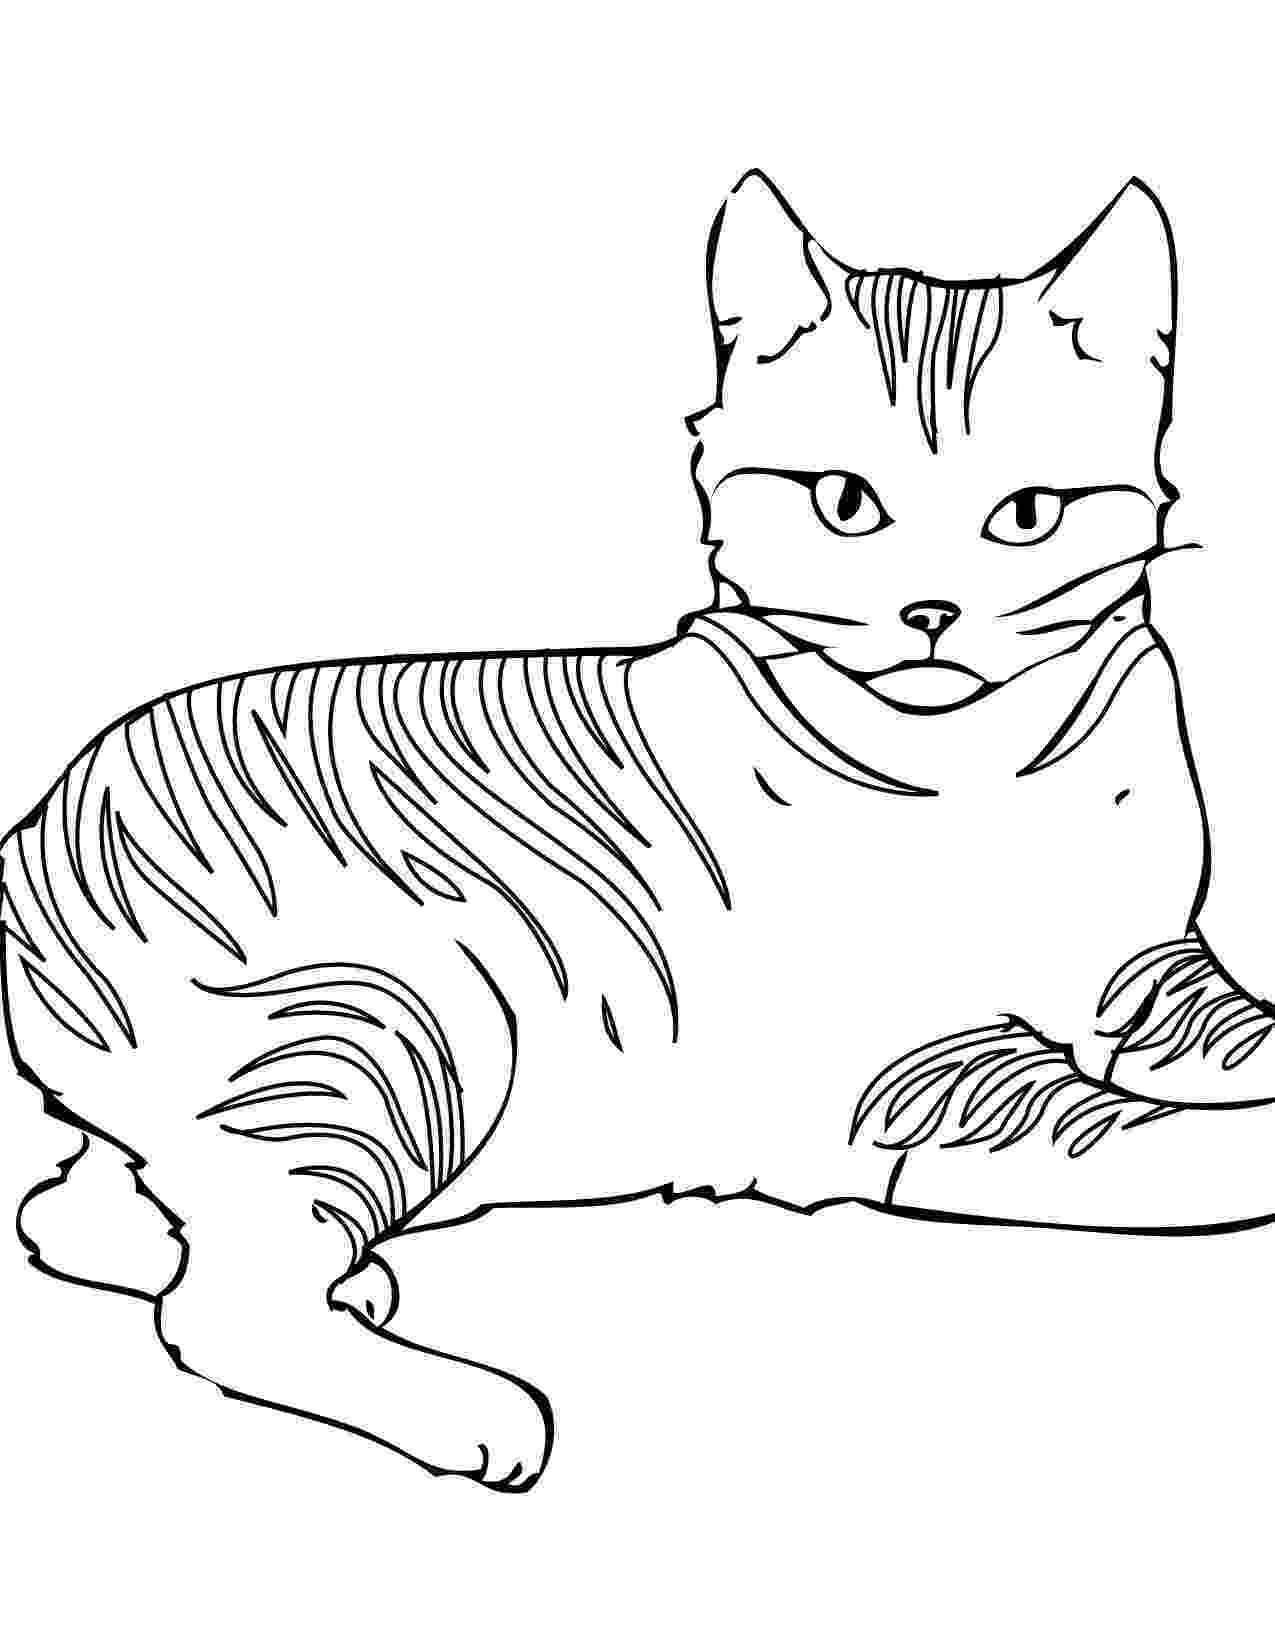 cat color pages free printable cat coloring pages for kids pages color cat 1 1